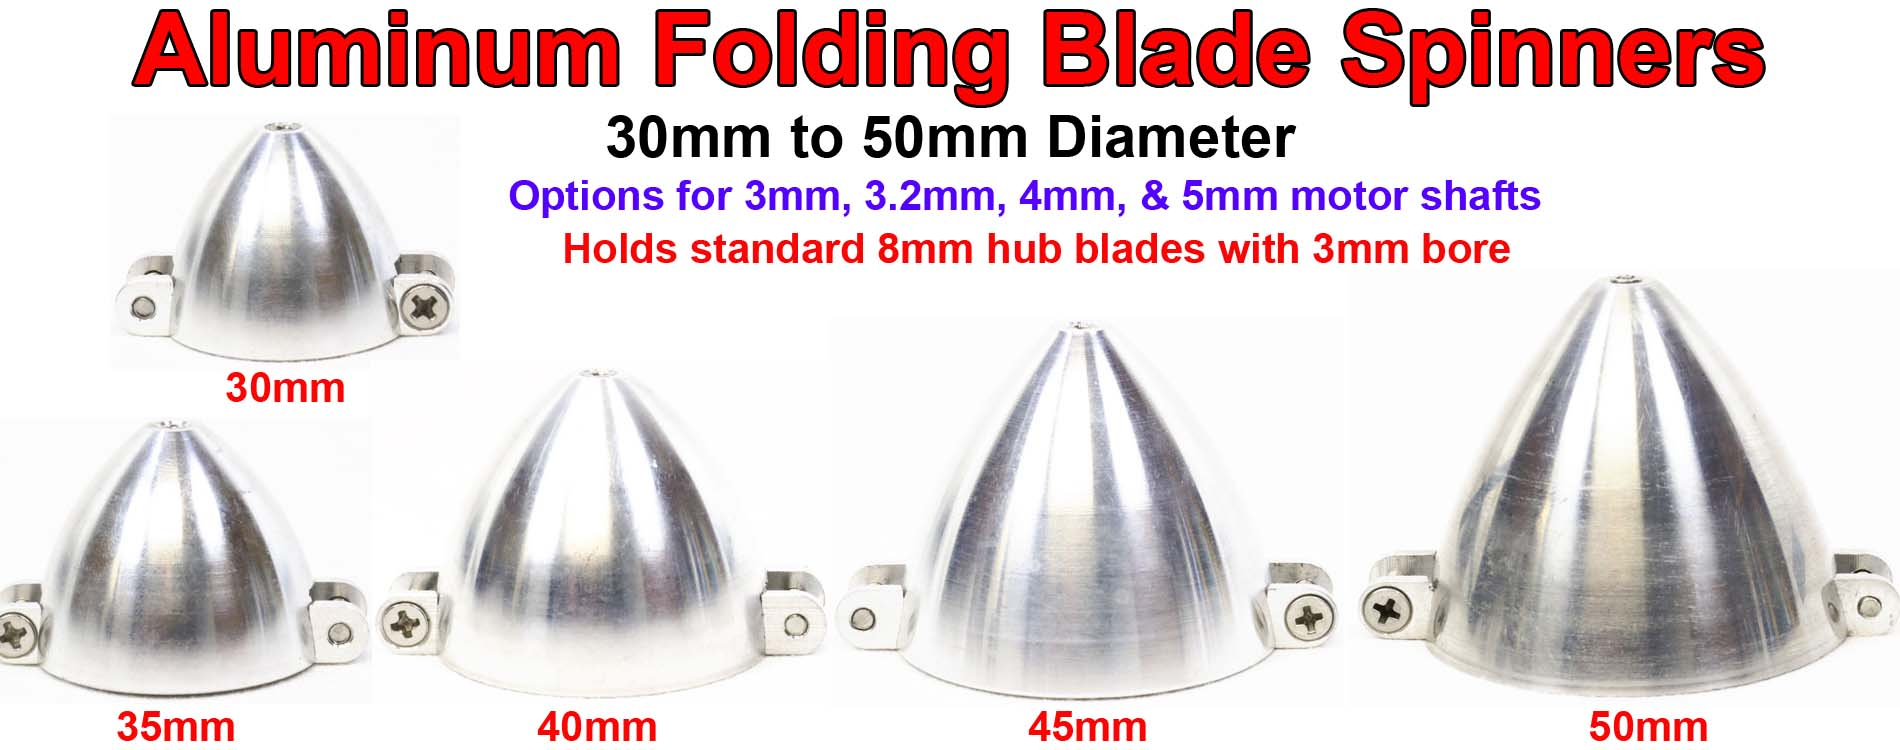 Folding Spinners